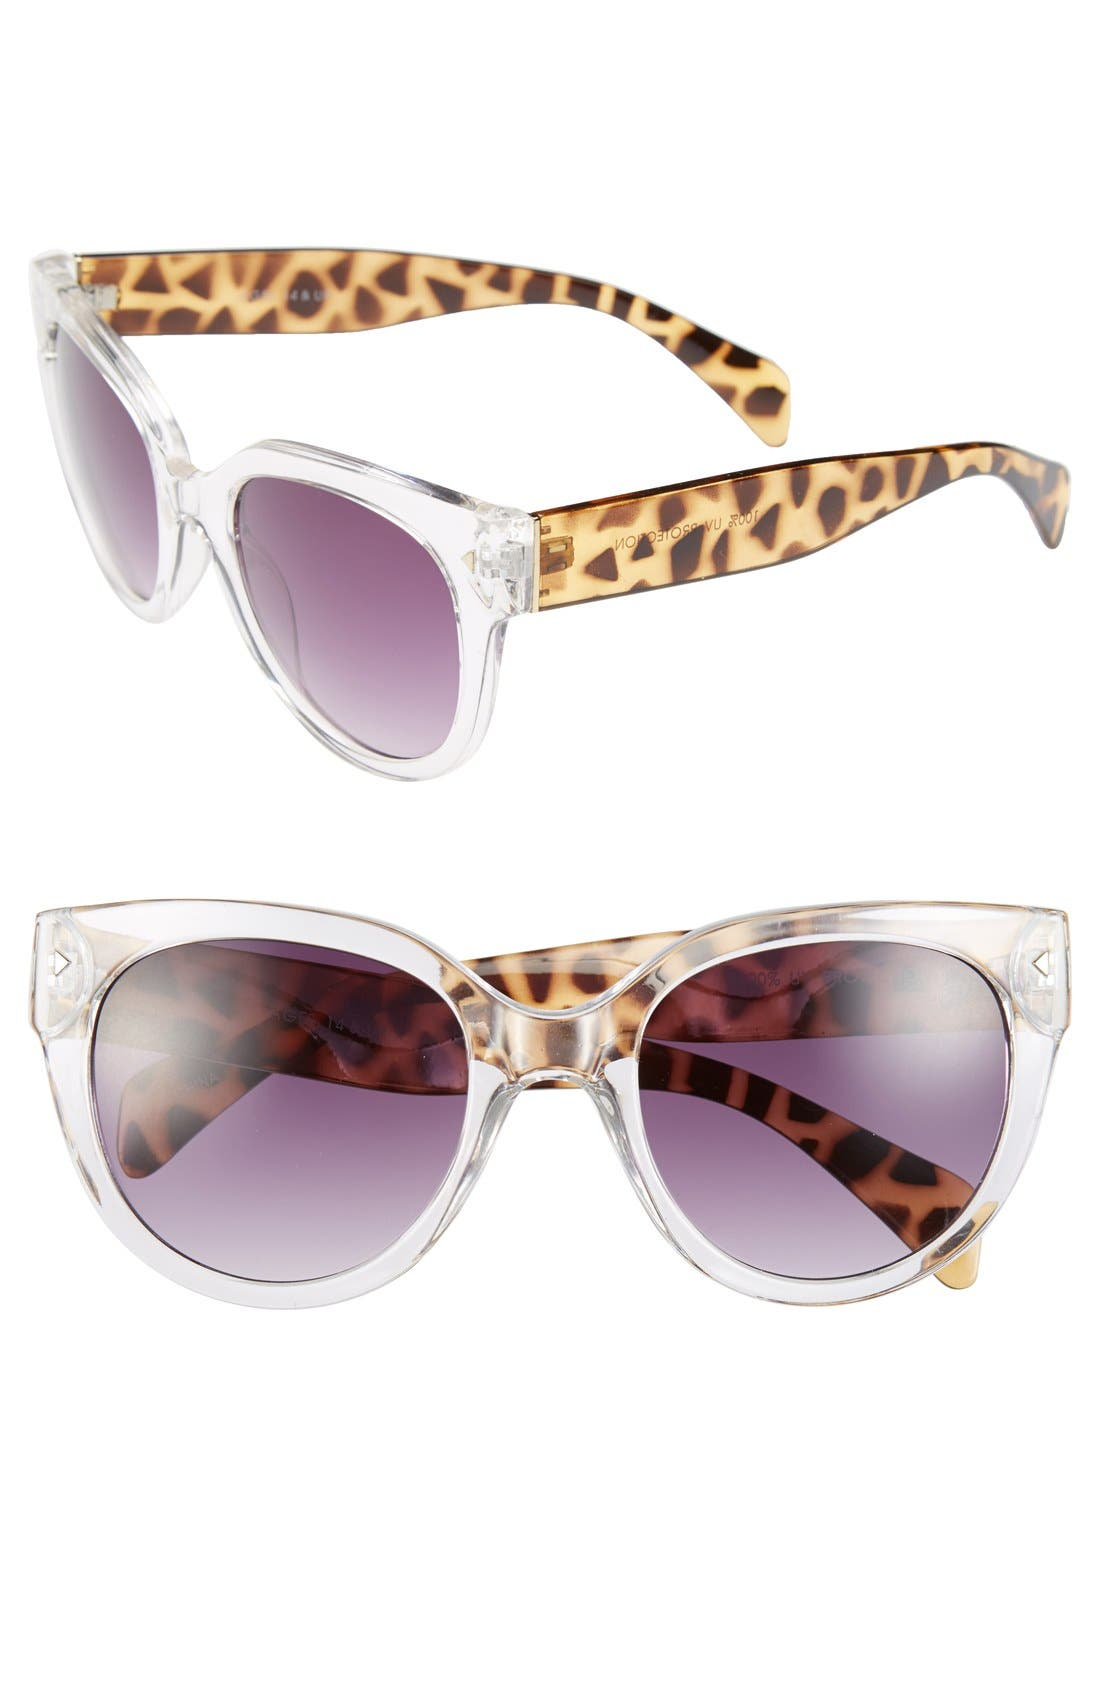 Alternate Image 1 Selected - FE NY 'Animal' 53mm Sunglasses